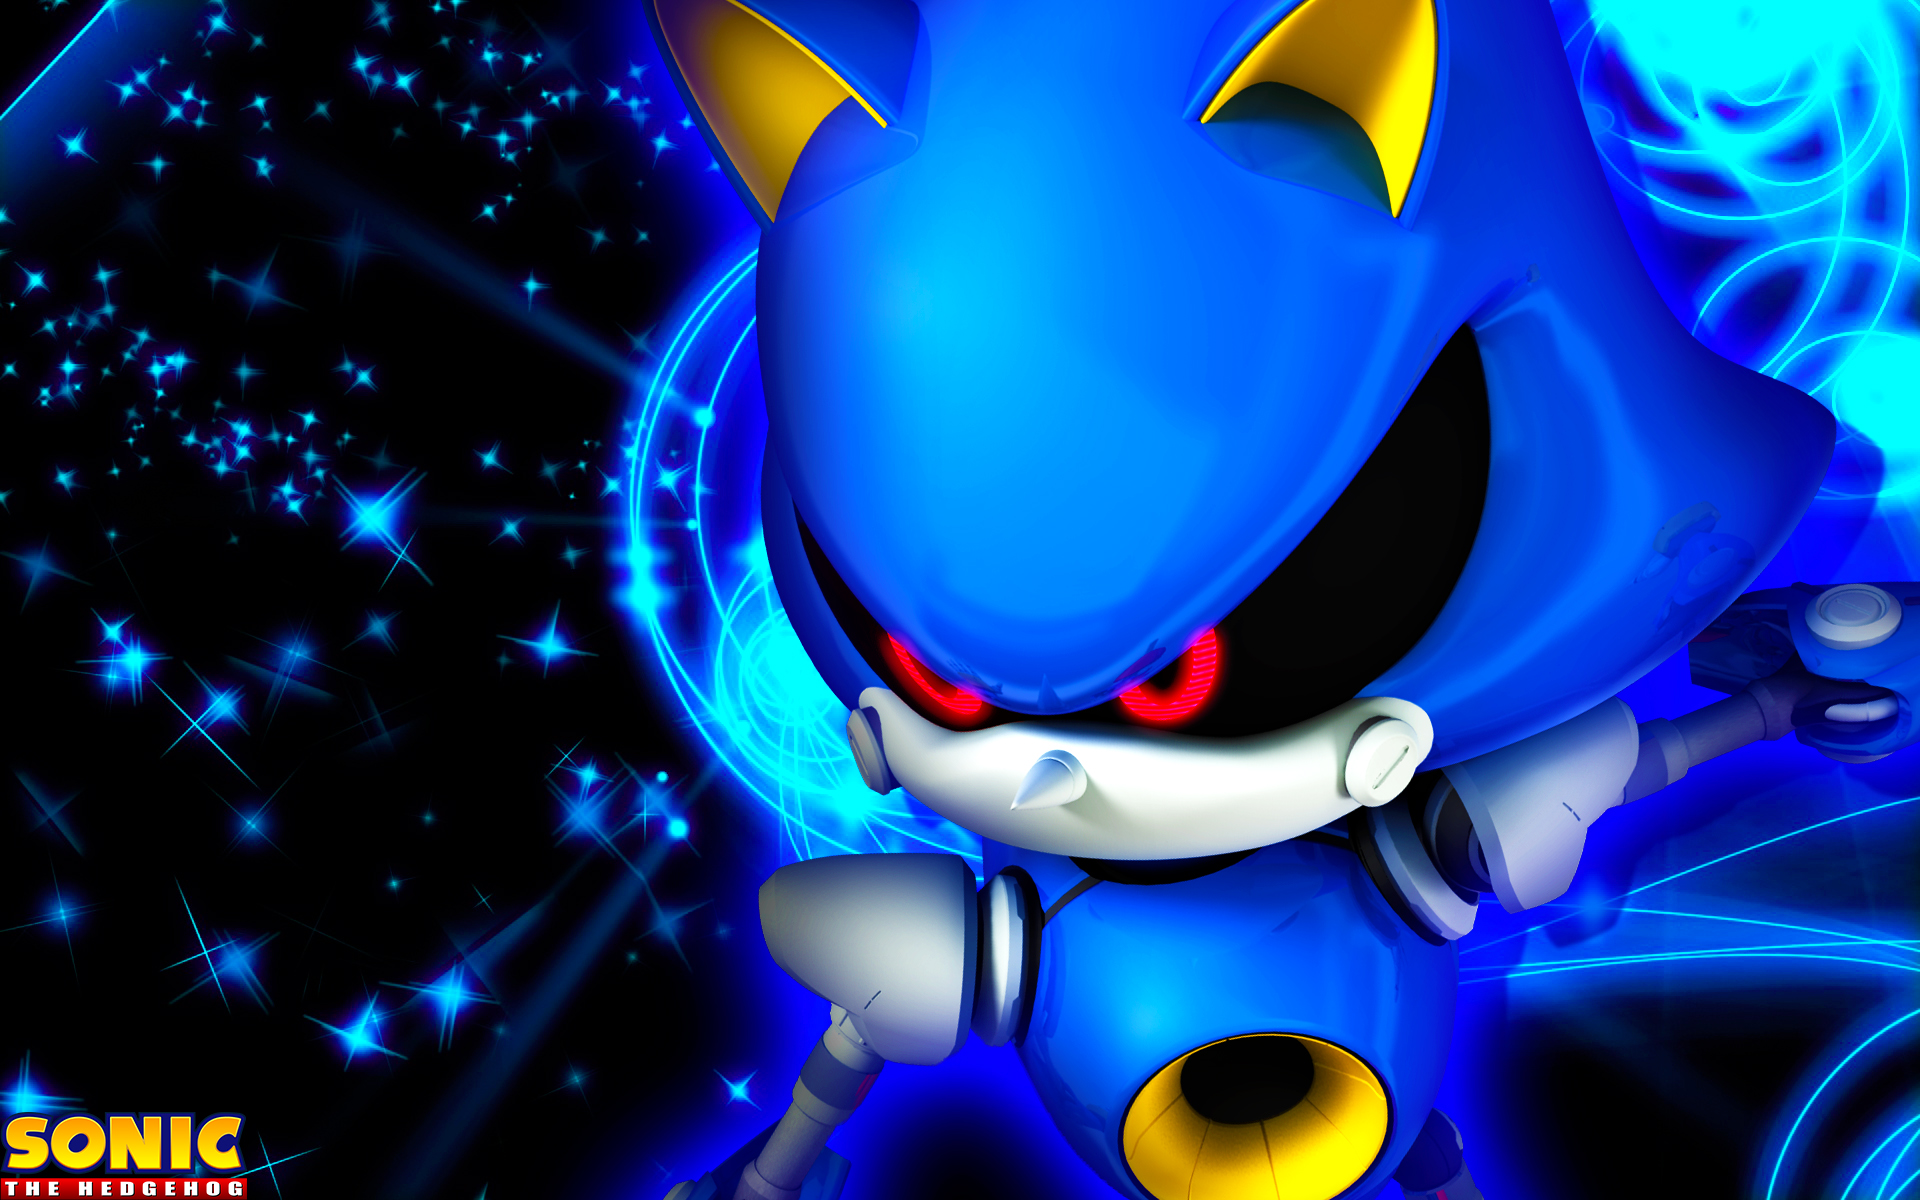 Metal-Vs-Sonic-1920x1080-by-Elesis-Knight-on-DeviantArt-wallpaper-wp3608409